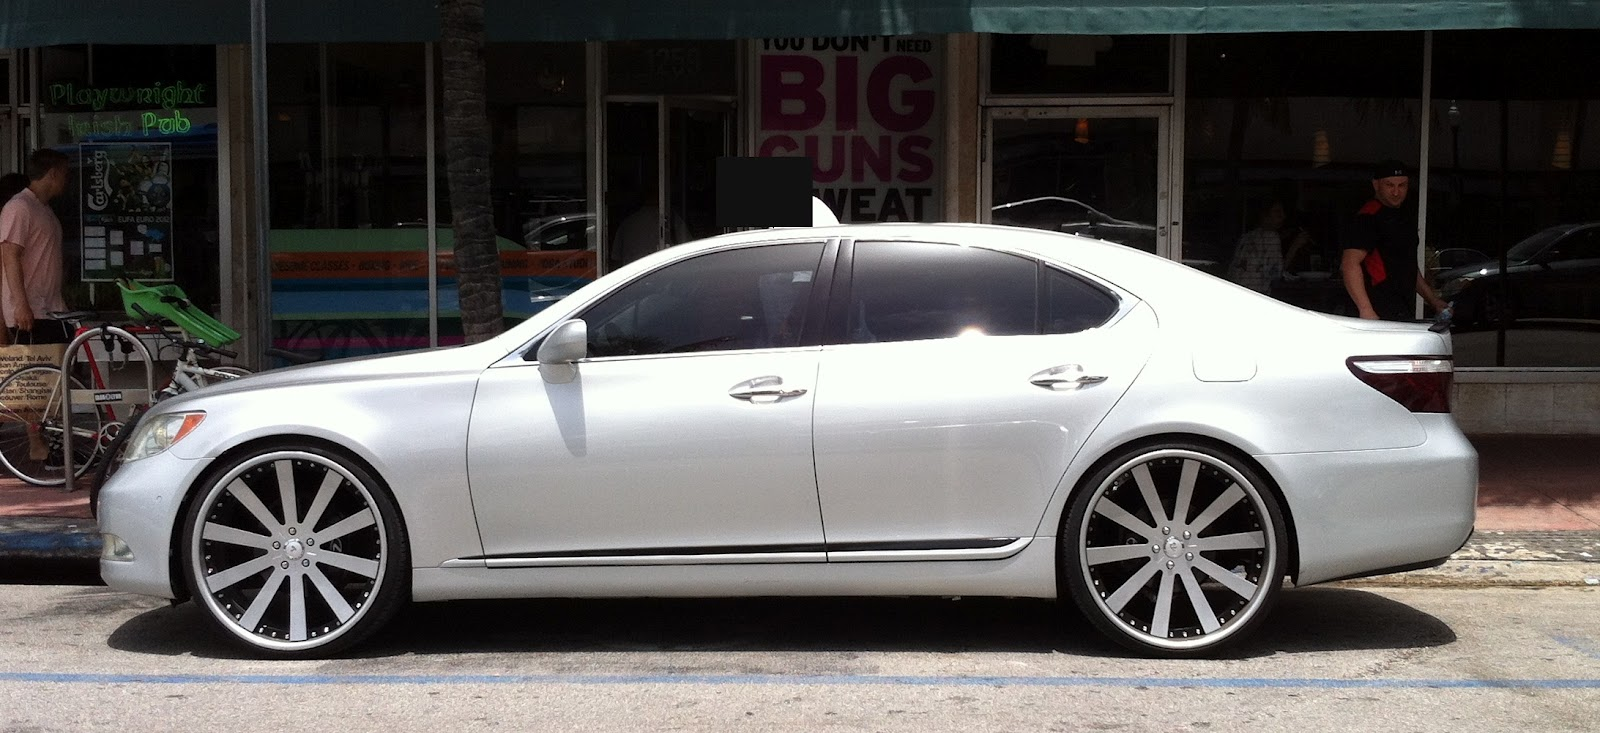 Box Shaped Cars >> Lexus Ls 2012 Review Amazing Pictures And Images Look At